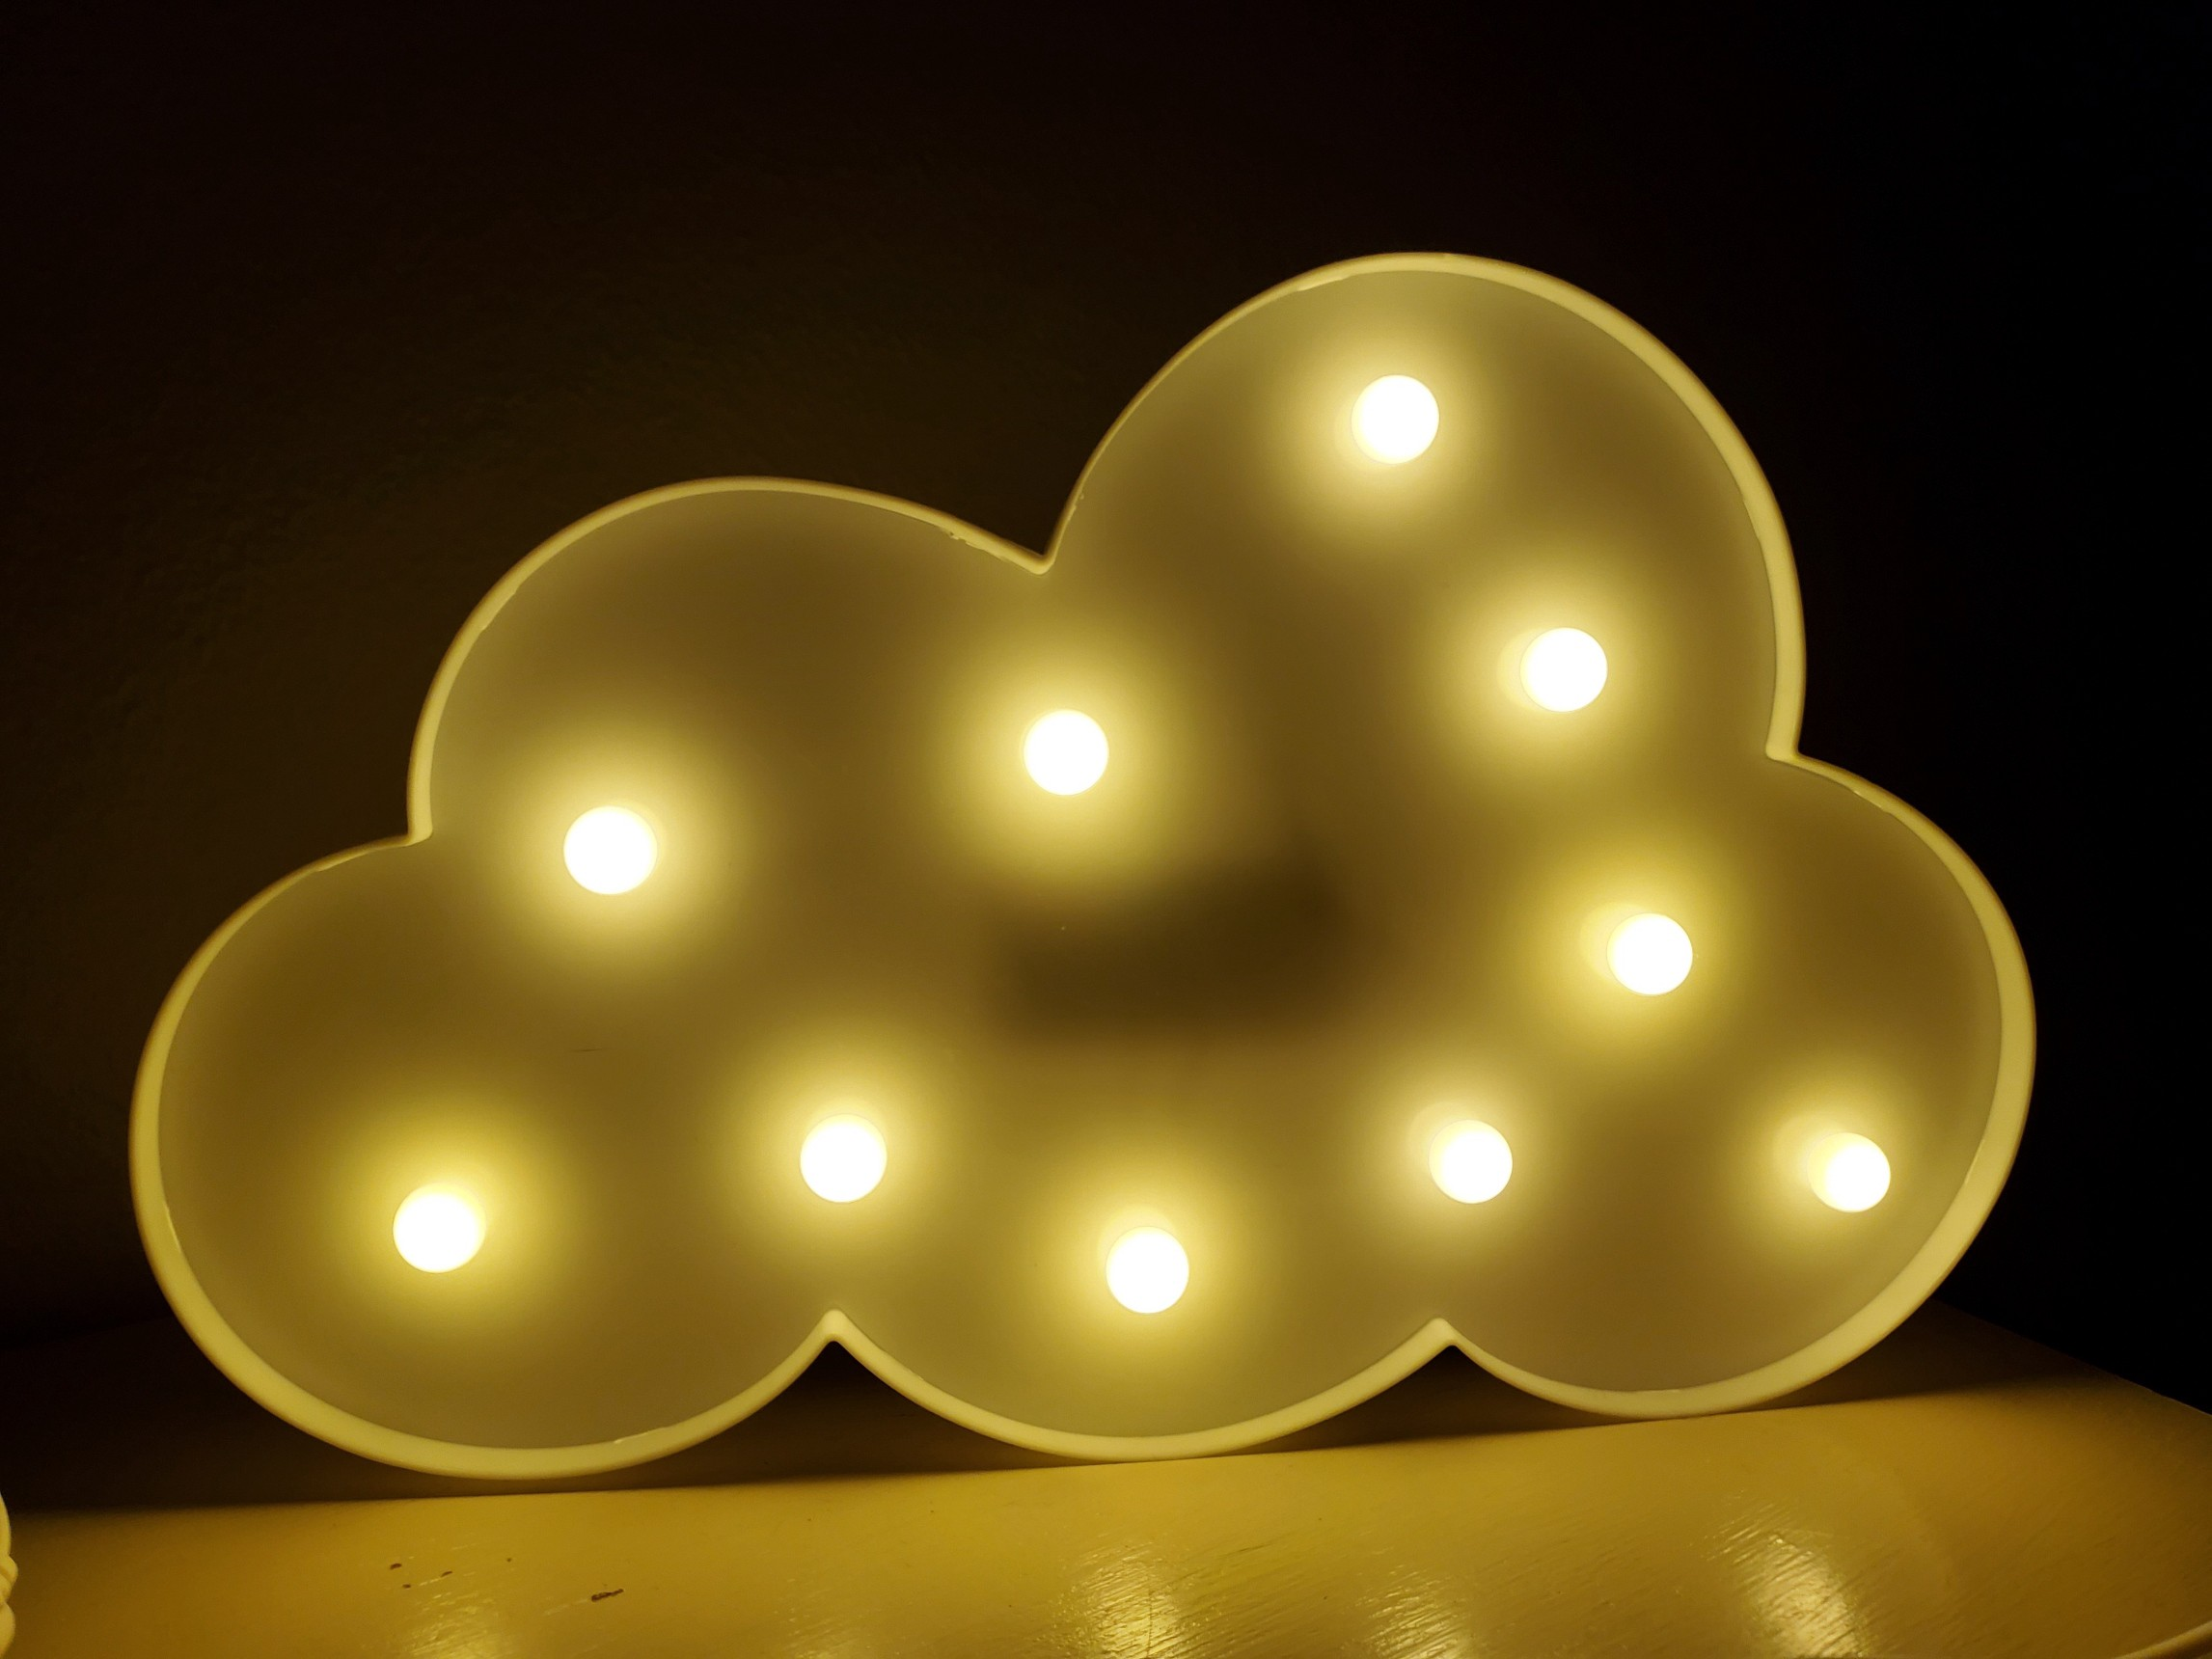 The cloud-shaped night light in our foster child's room.